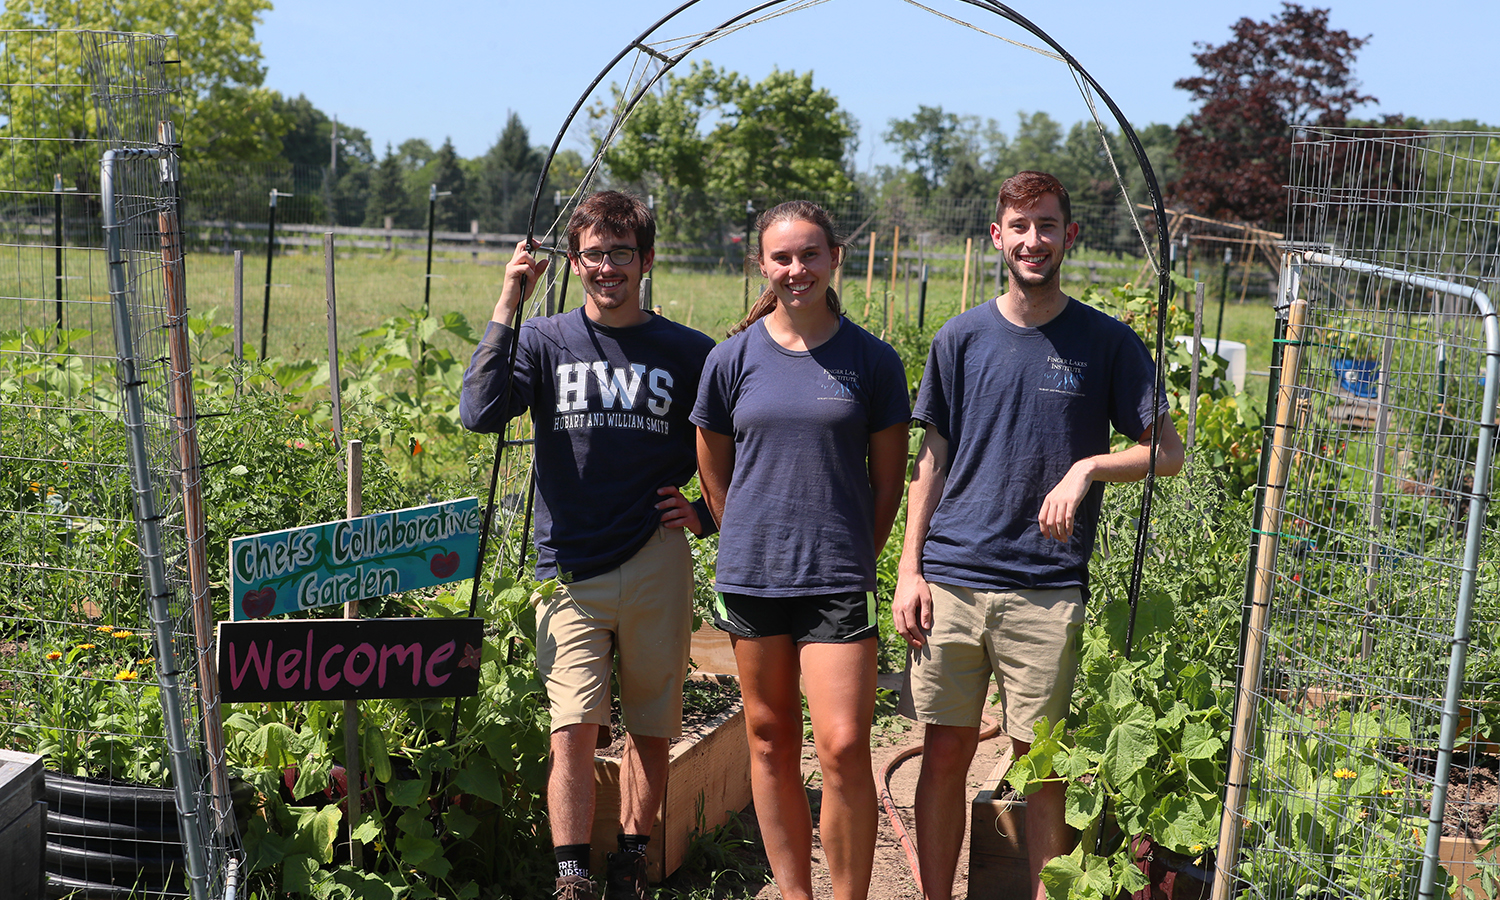 Fribolin Farm interns Sam Horner '21 and Eileen Rath '20 and Summer of Service intern Alexander Cottrell '20 pose at the entrance of the Chef's Collaborative Garden on HWS Fribolin Farm. The students were able to complete day-to-day tasks on the Farm through the Finger Lakes Institute.